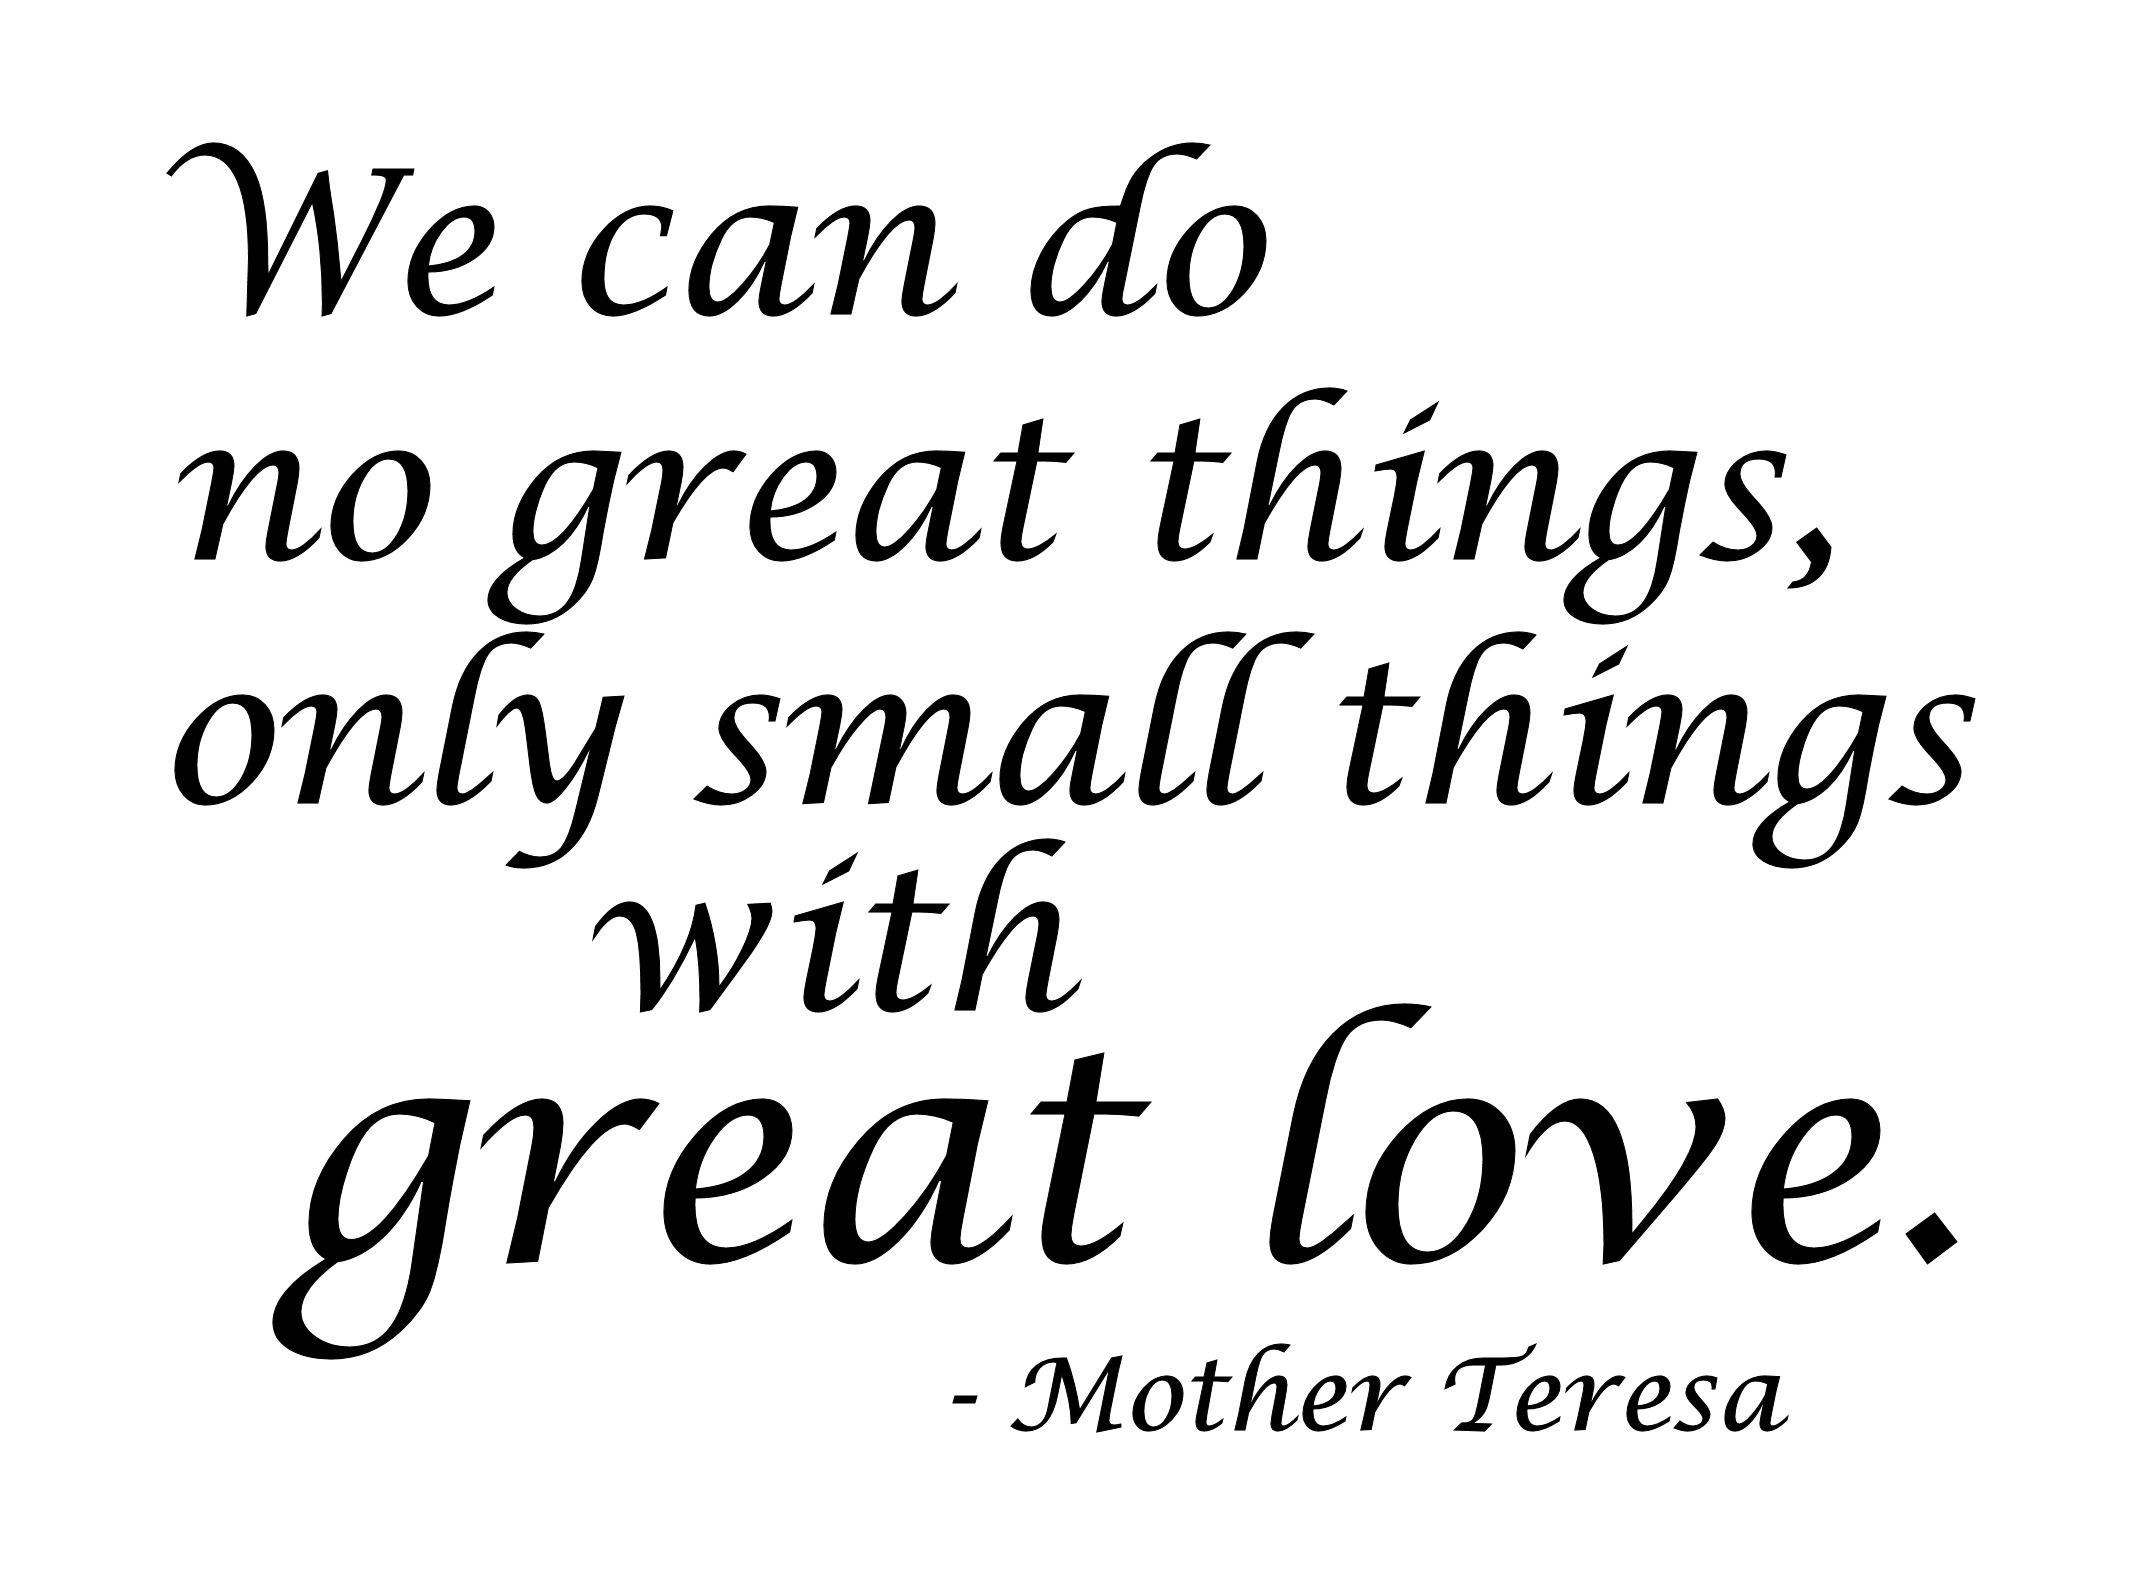 Great Love Quotes Mother Teresa  My World  Pinterest  Cute Love Quotes Love